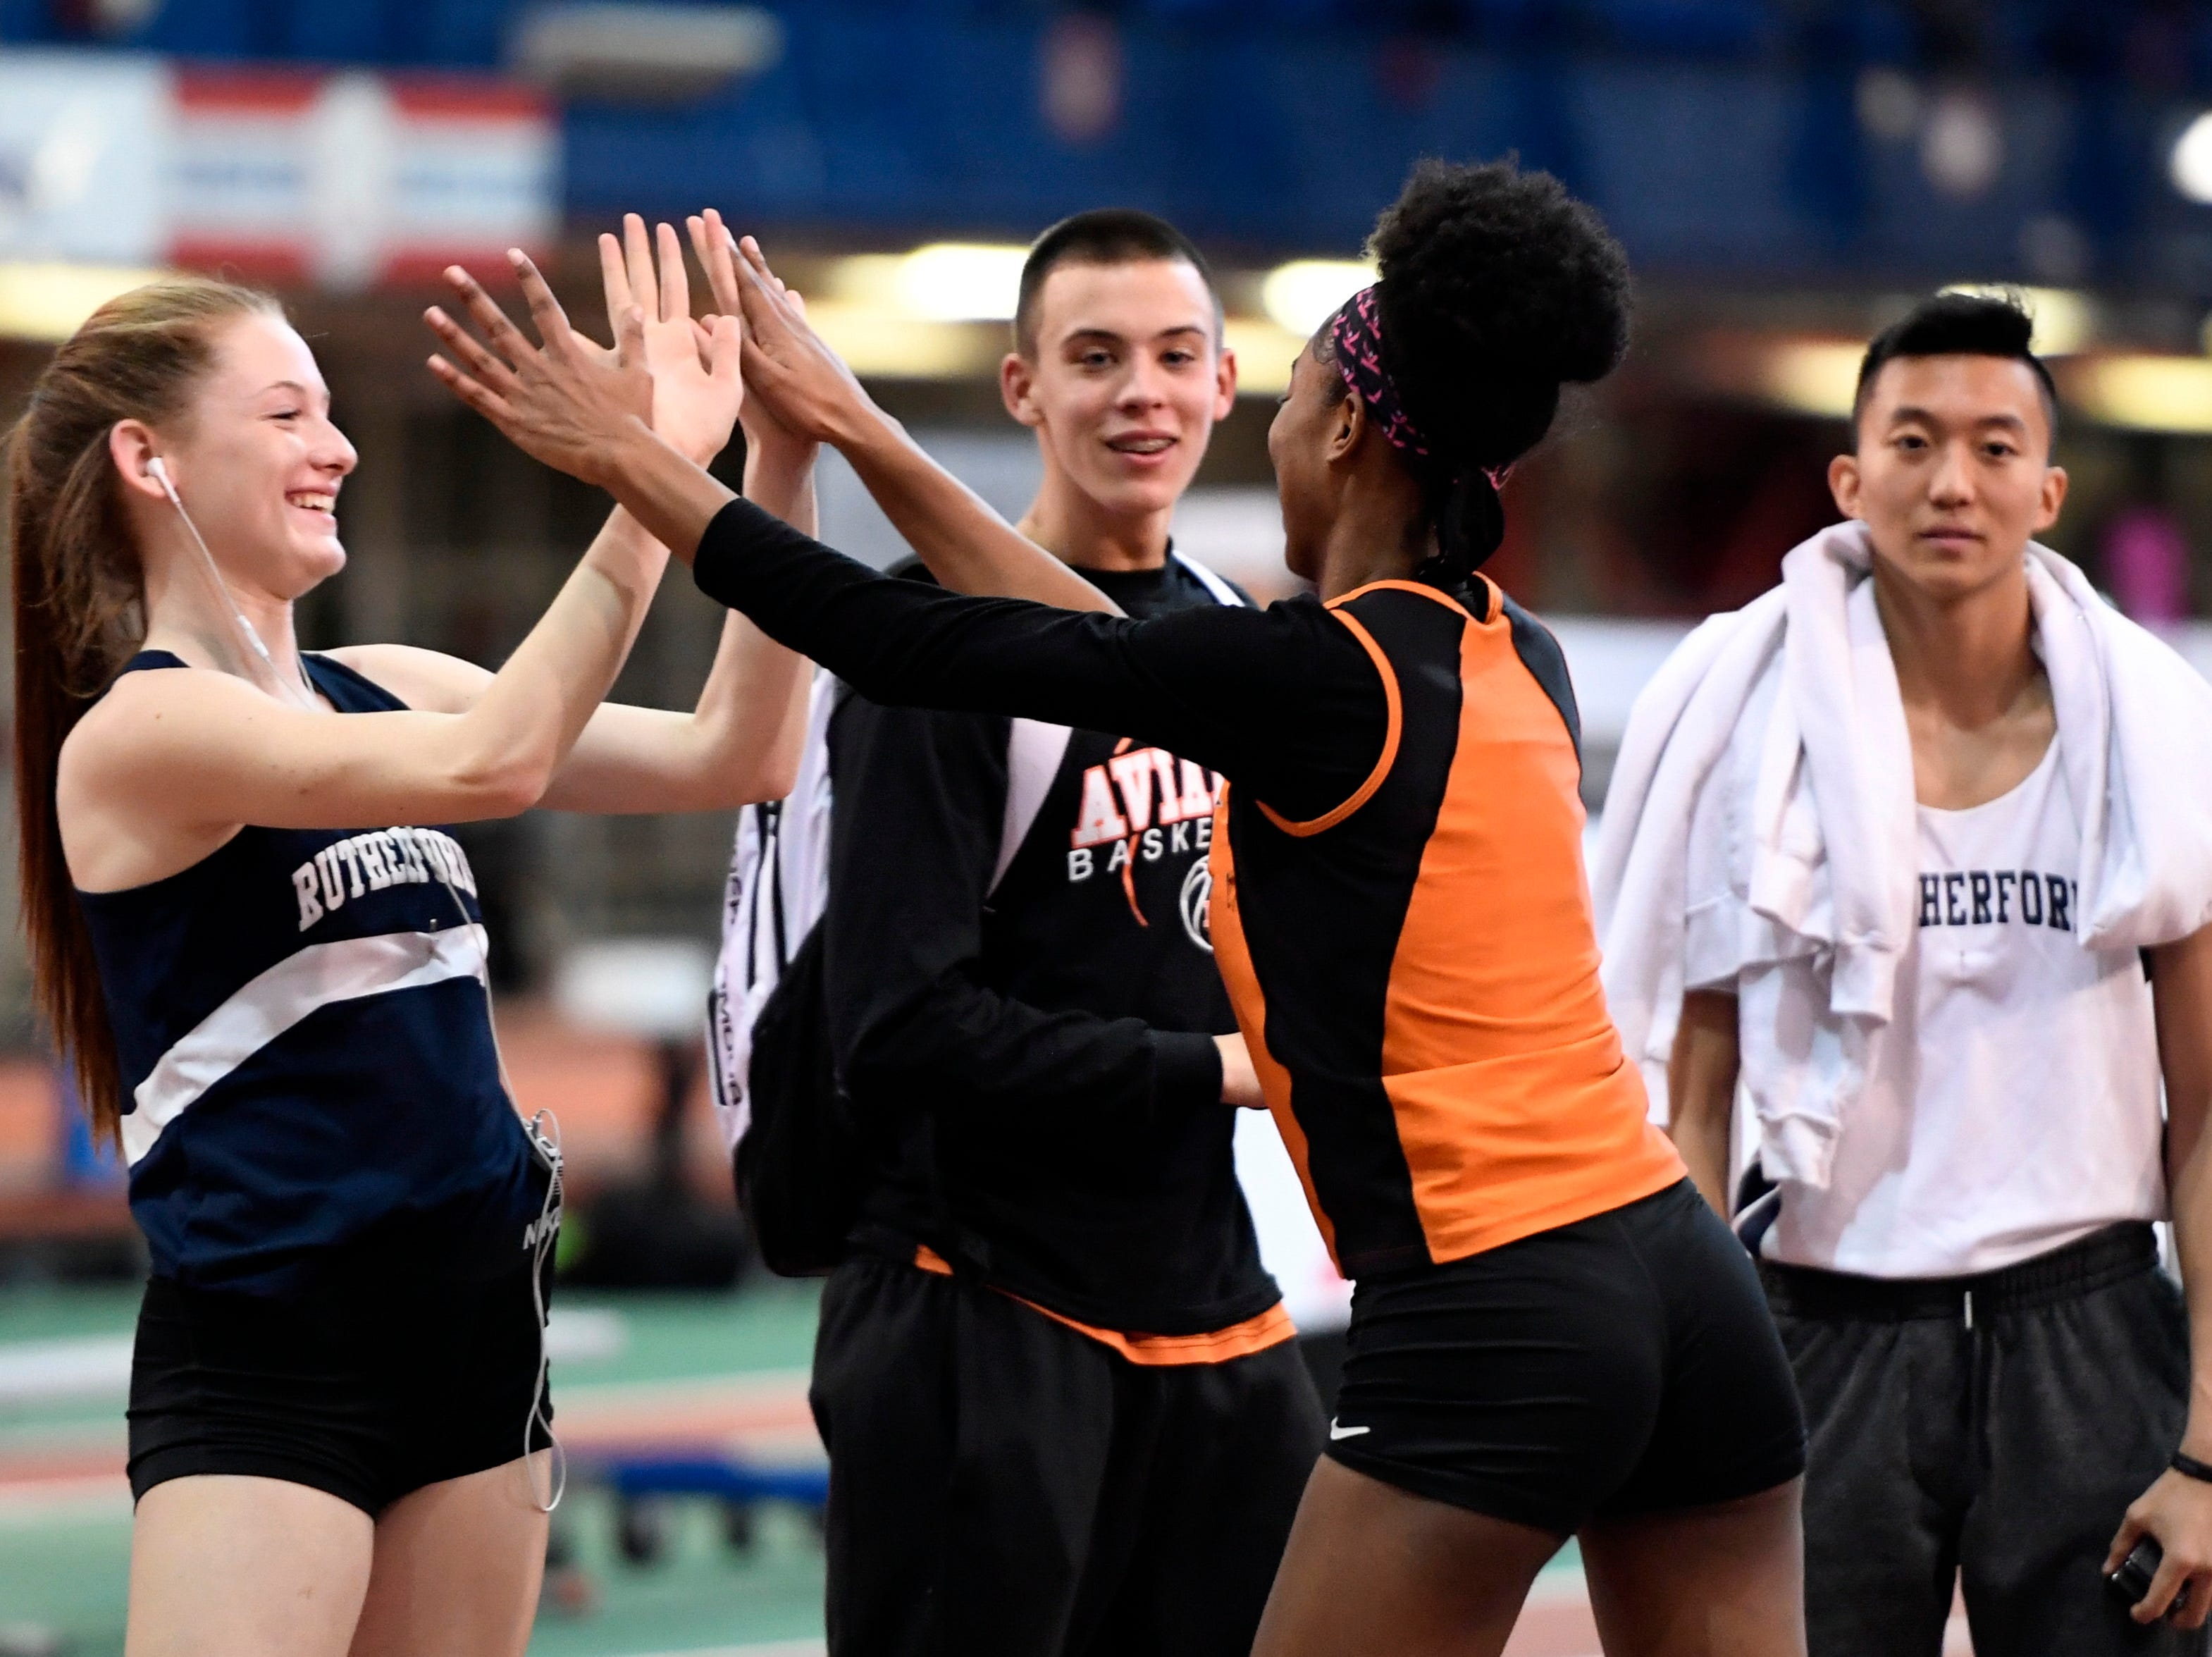 Rutherford's Jenna Rogers, left, high-fives Hasbrouck Heights' Talia Ferguson after Ferguson clears 5-feet-2-inches in the high jump during the NJIC track meet at the Armory Track on Monday, Jan. 7, 2019, in New York.